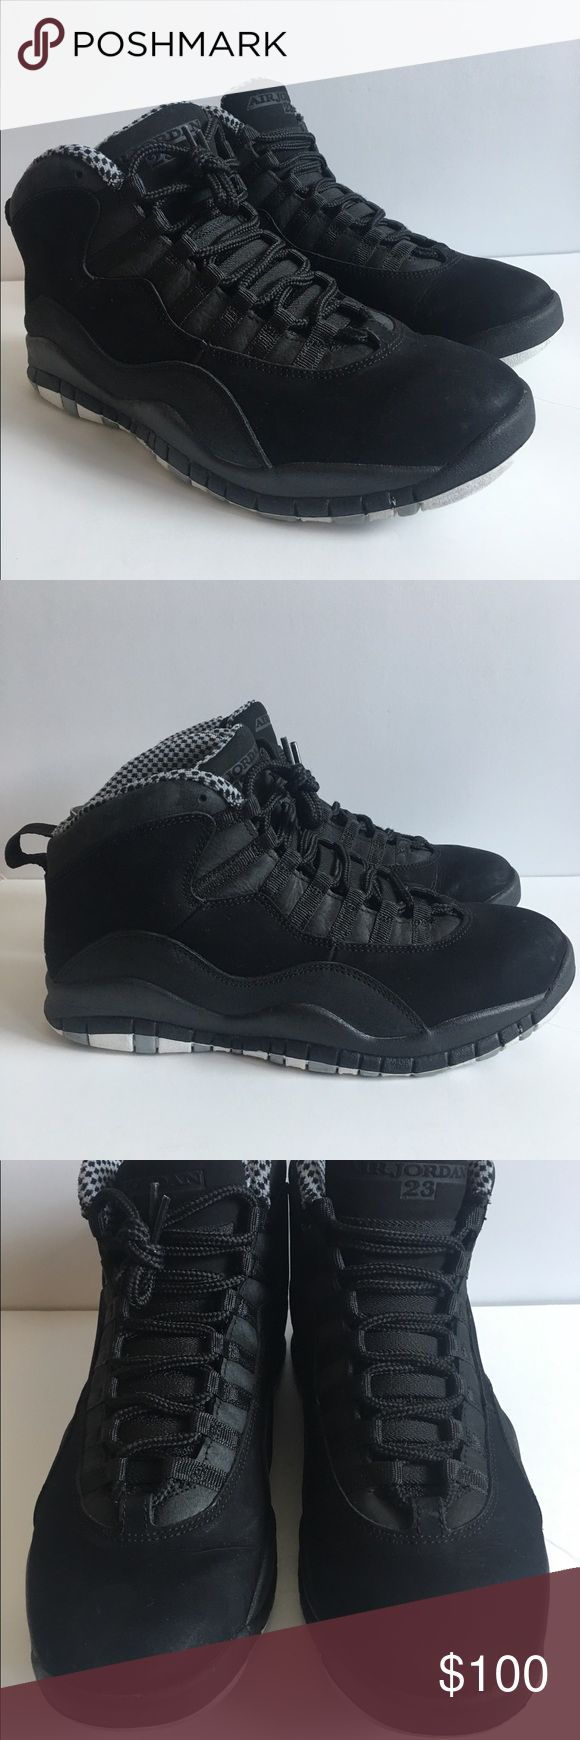 Nike Air Jordan 10 men's size 8.5 Nike Air Jordan 10 men's size 8.5. Scuff's illustrated in pictures. Still in great condition. Jordan Shoes Athletic Shoes